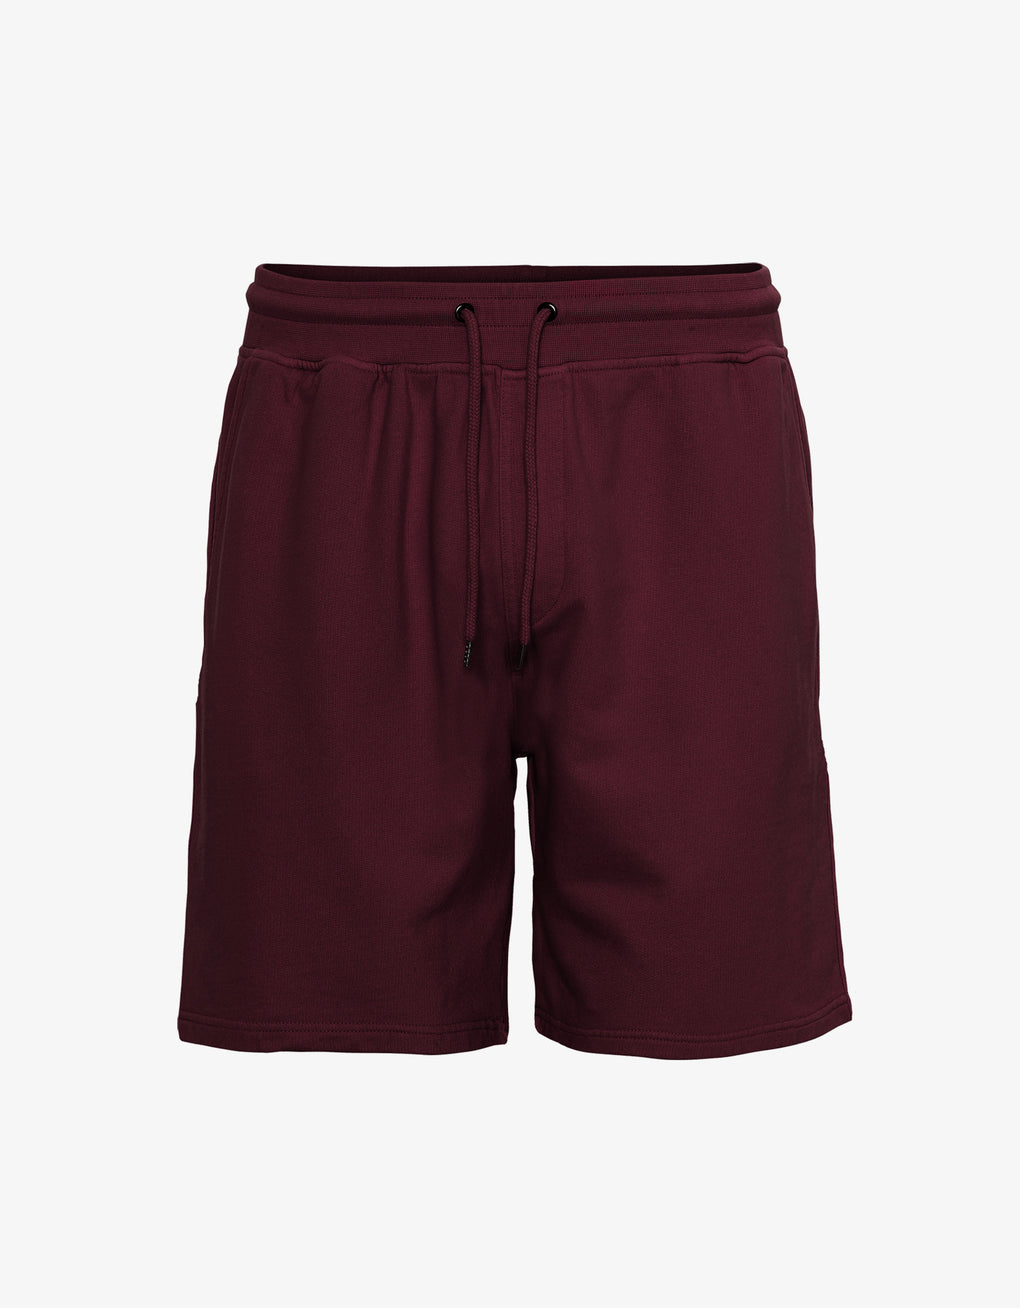 Colorful Standard Classic Organic Sweatshorts Shorts Oxblood Red